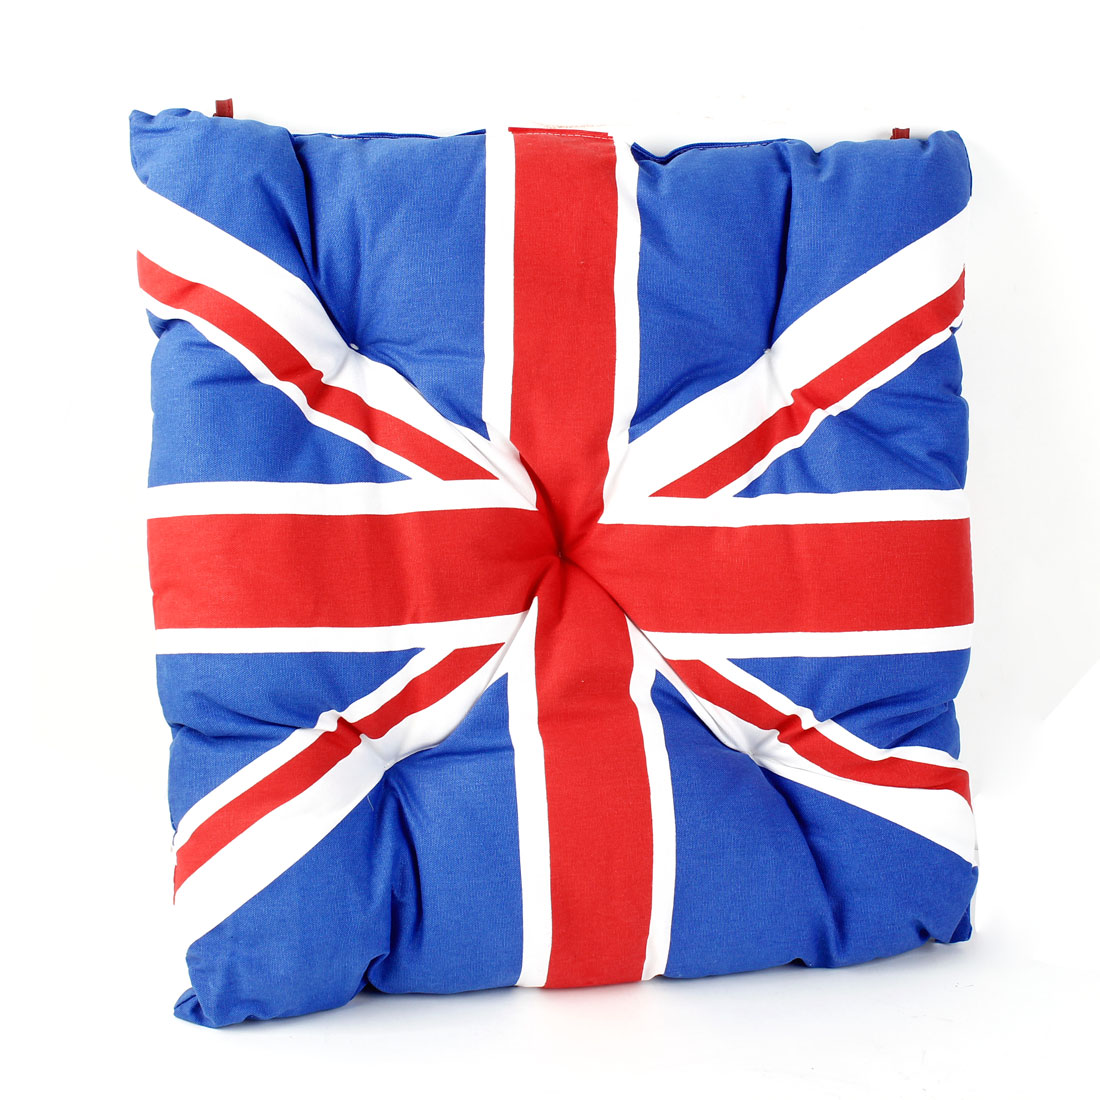 Auto Car Seat Cushion Union Jack Mini Saddles Seat Universal Cover Blue Red White